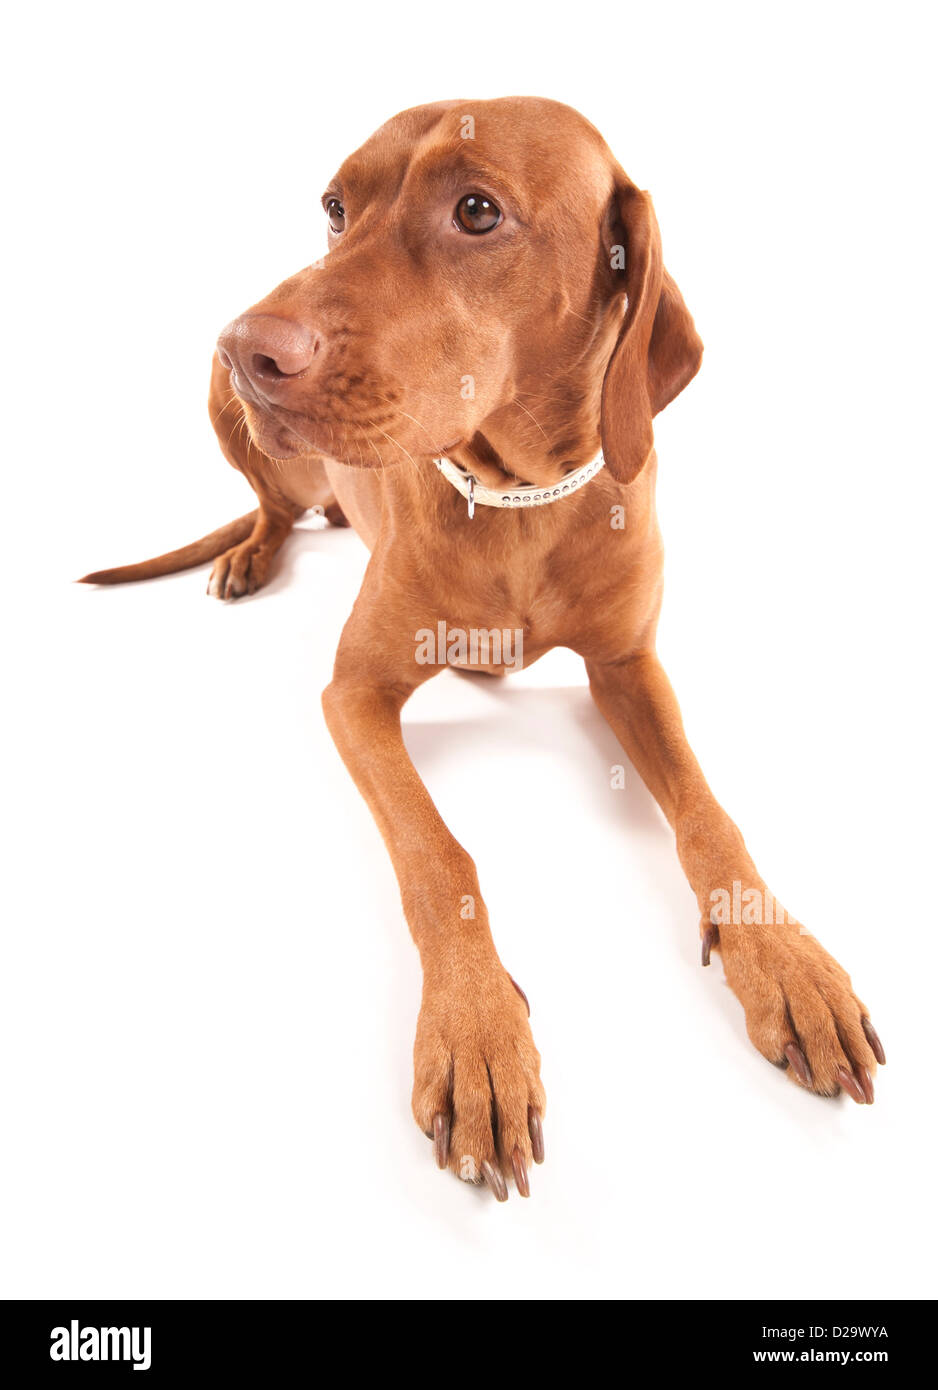 Wide angle portrait of a beautiful brown dog. Isolated on white background. - Stock Image